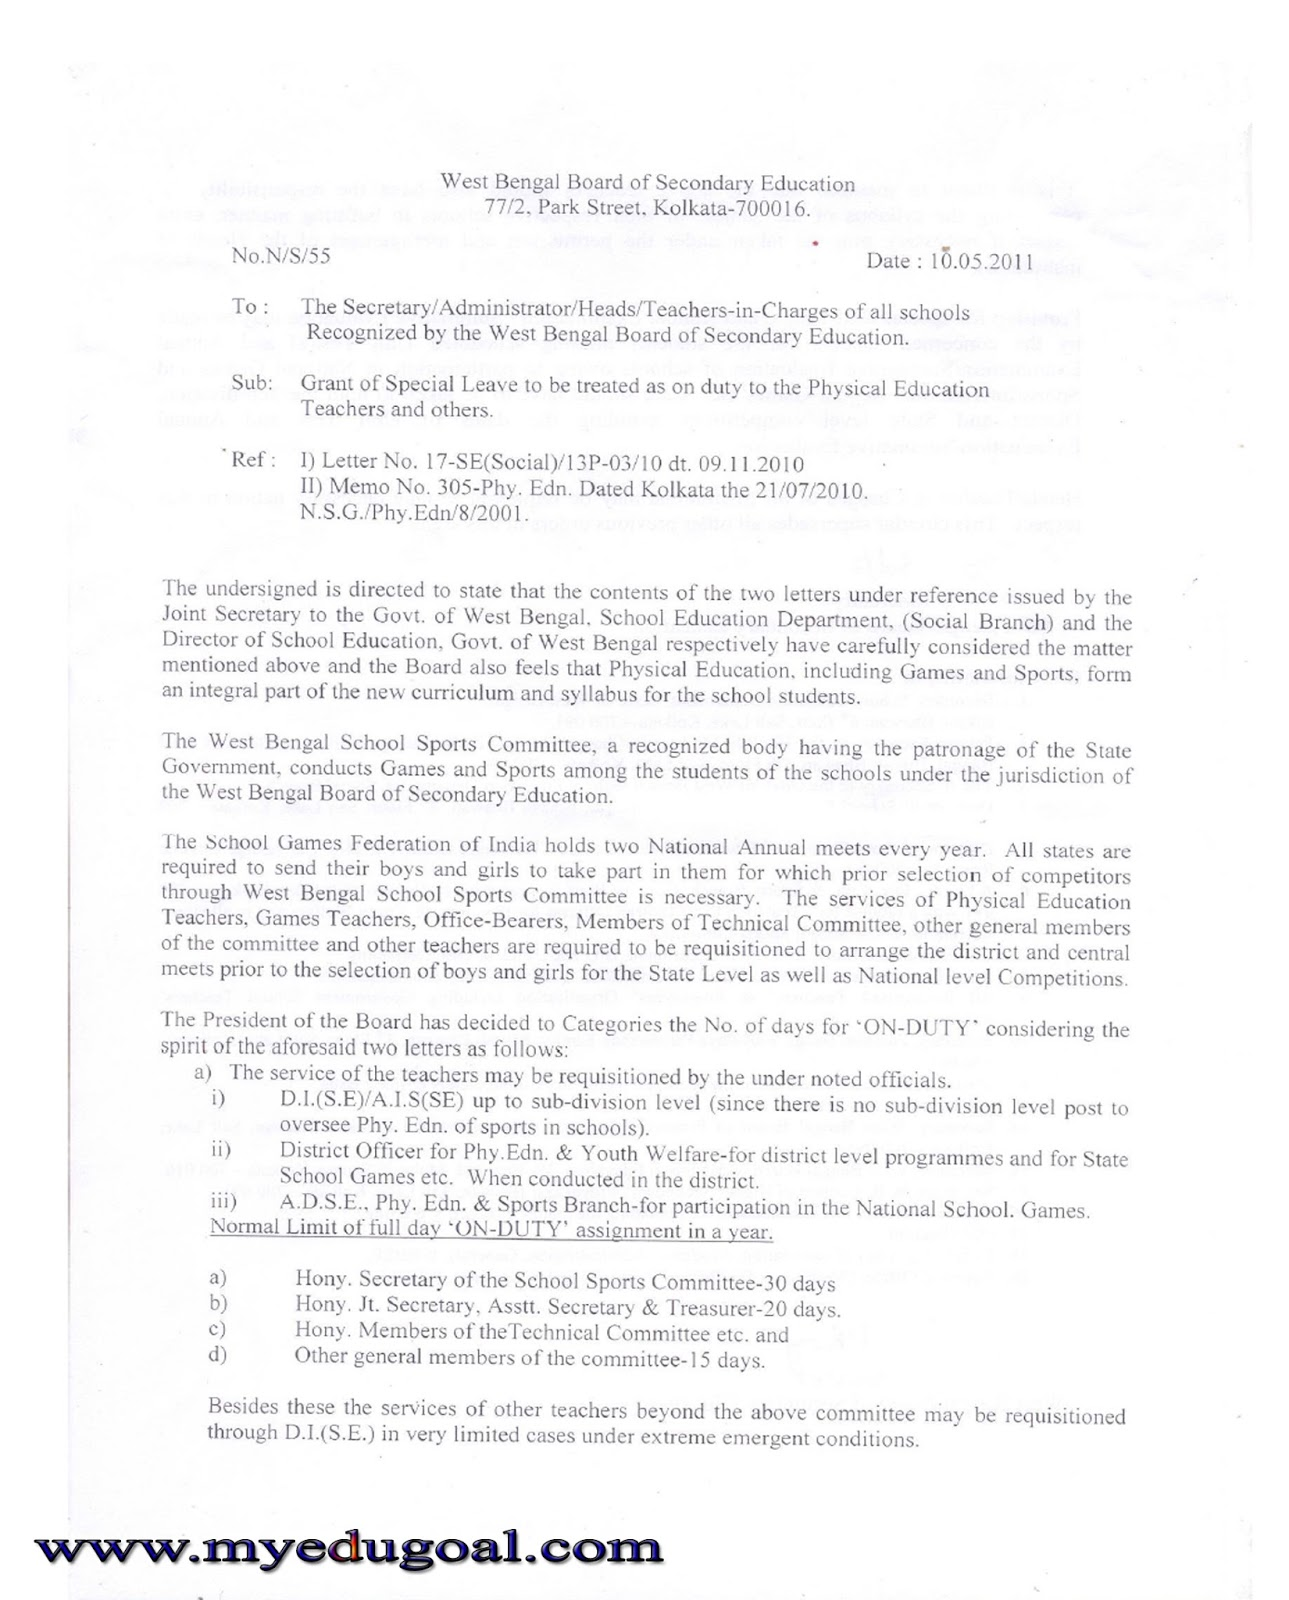 grant of special leave to be treated as on duty to the physical grant of special leave to be treated as on duty to the physical education teachers and